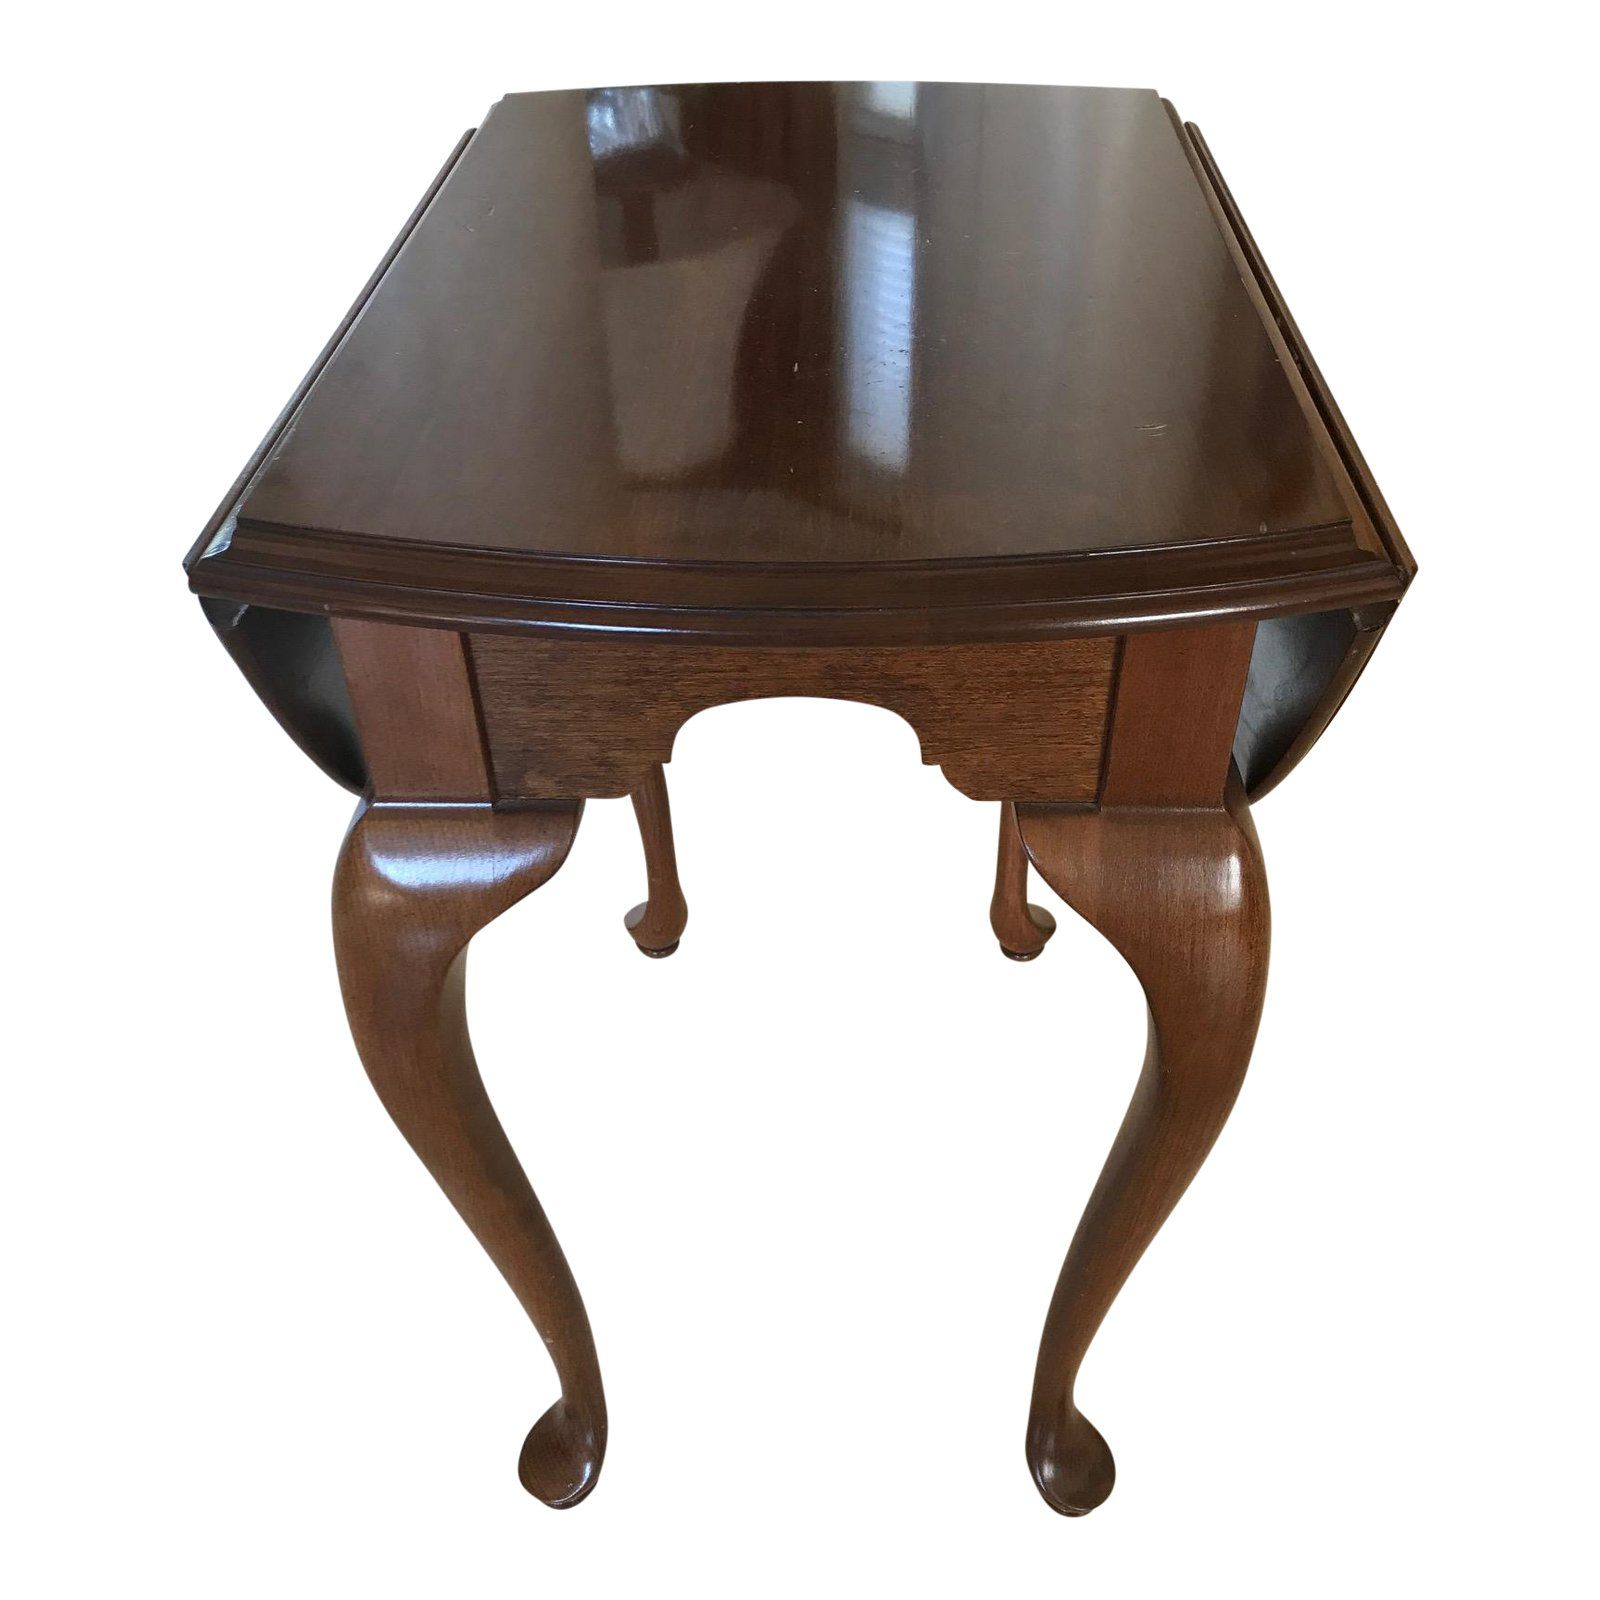 ethan allen drop leaf solid cherry wood accent table chairish tables decorative boxes with lids pier one imports dining square clock console storage round marble top coffee mirror